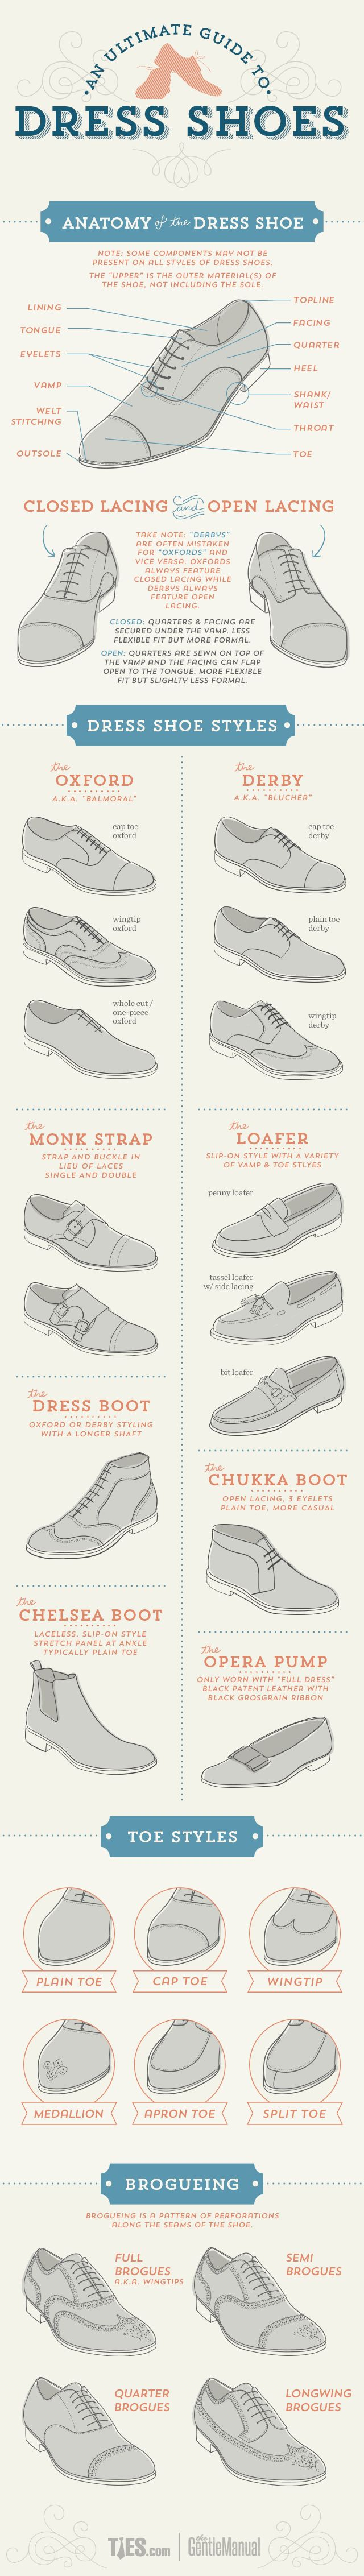 An Ultimate Guide To Dress Shoes   #infographic #DressShoes #Fashion